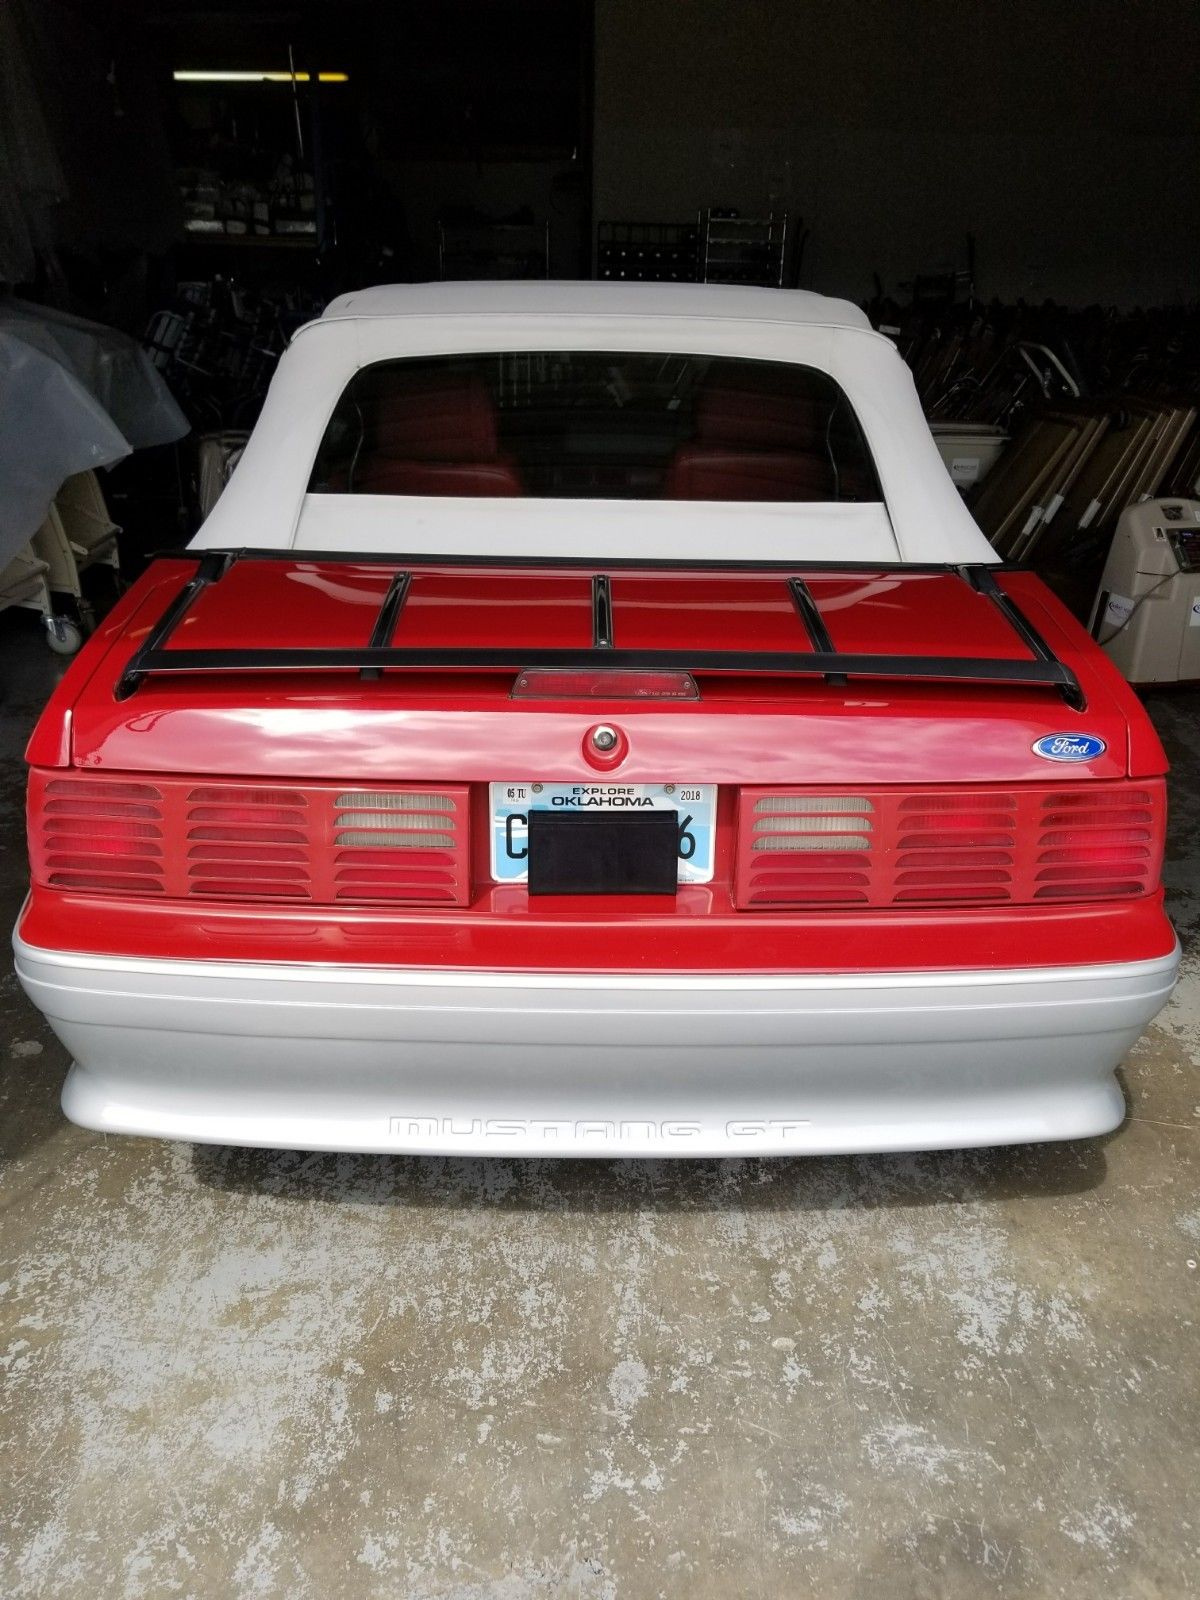 Cadillac Ct6 For Sale >> Awesome 1989 Ford Mustang GT Convertible 89 Mustang GT Fox ...